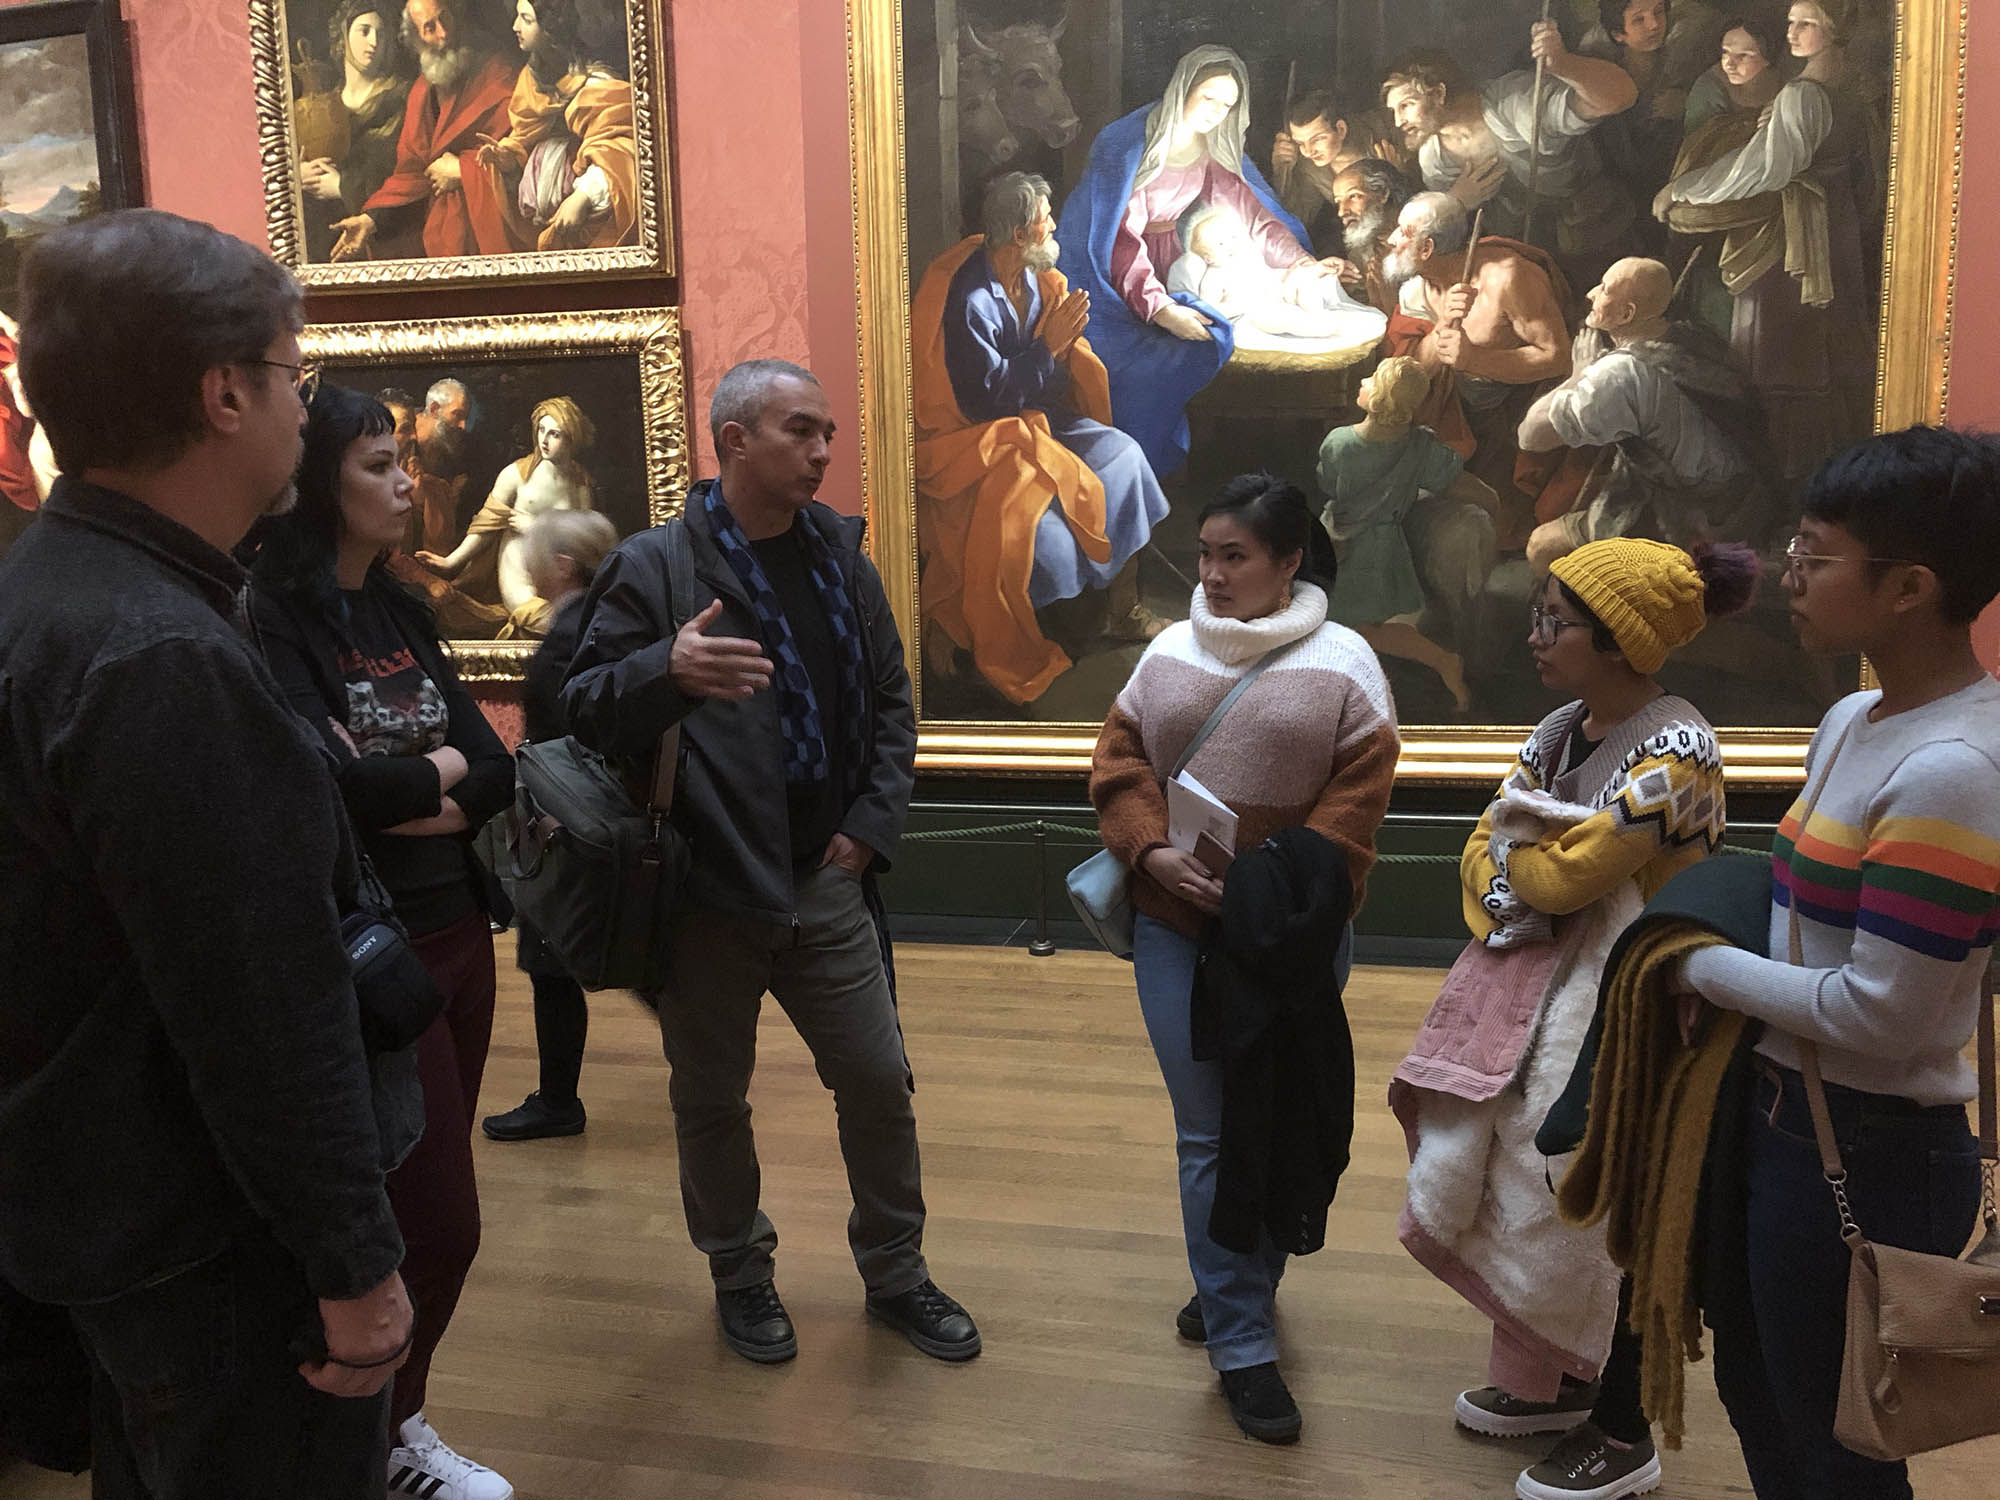 Professors Potter and Maldonado speak with students in the vast Italian Renaissance masters room.